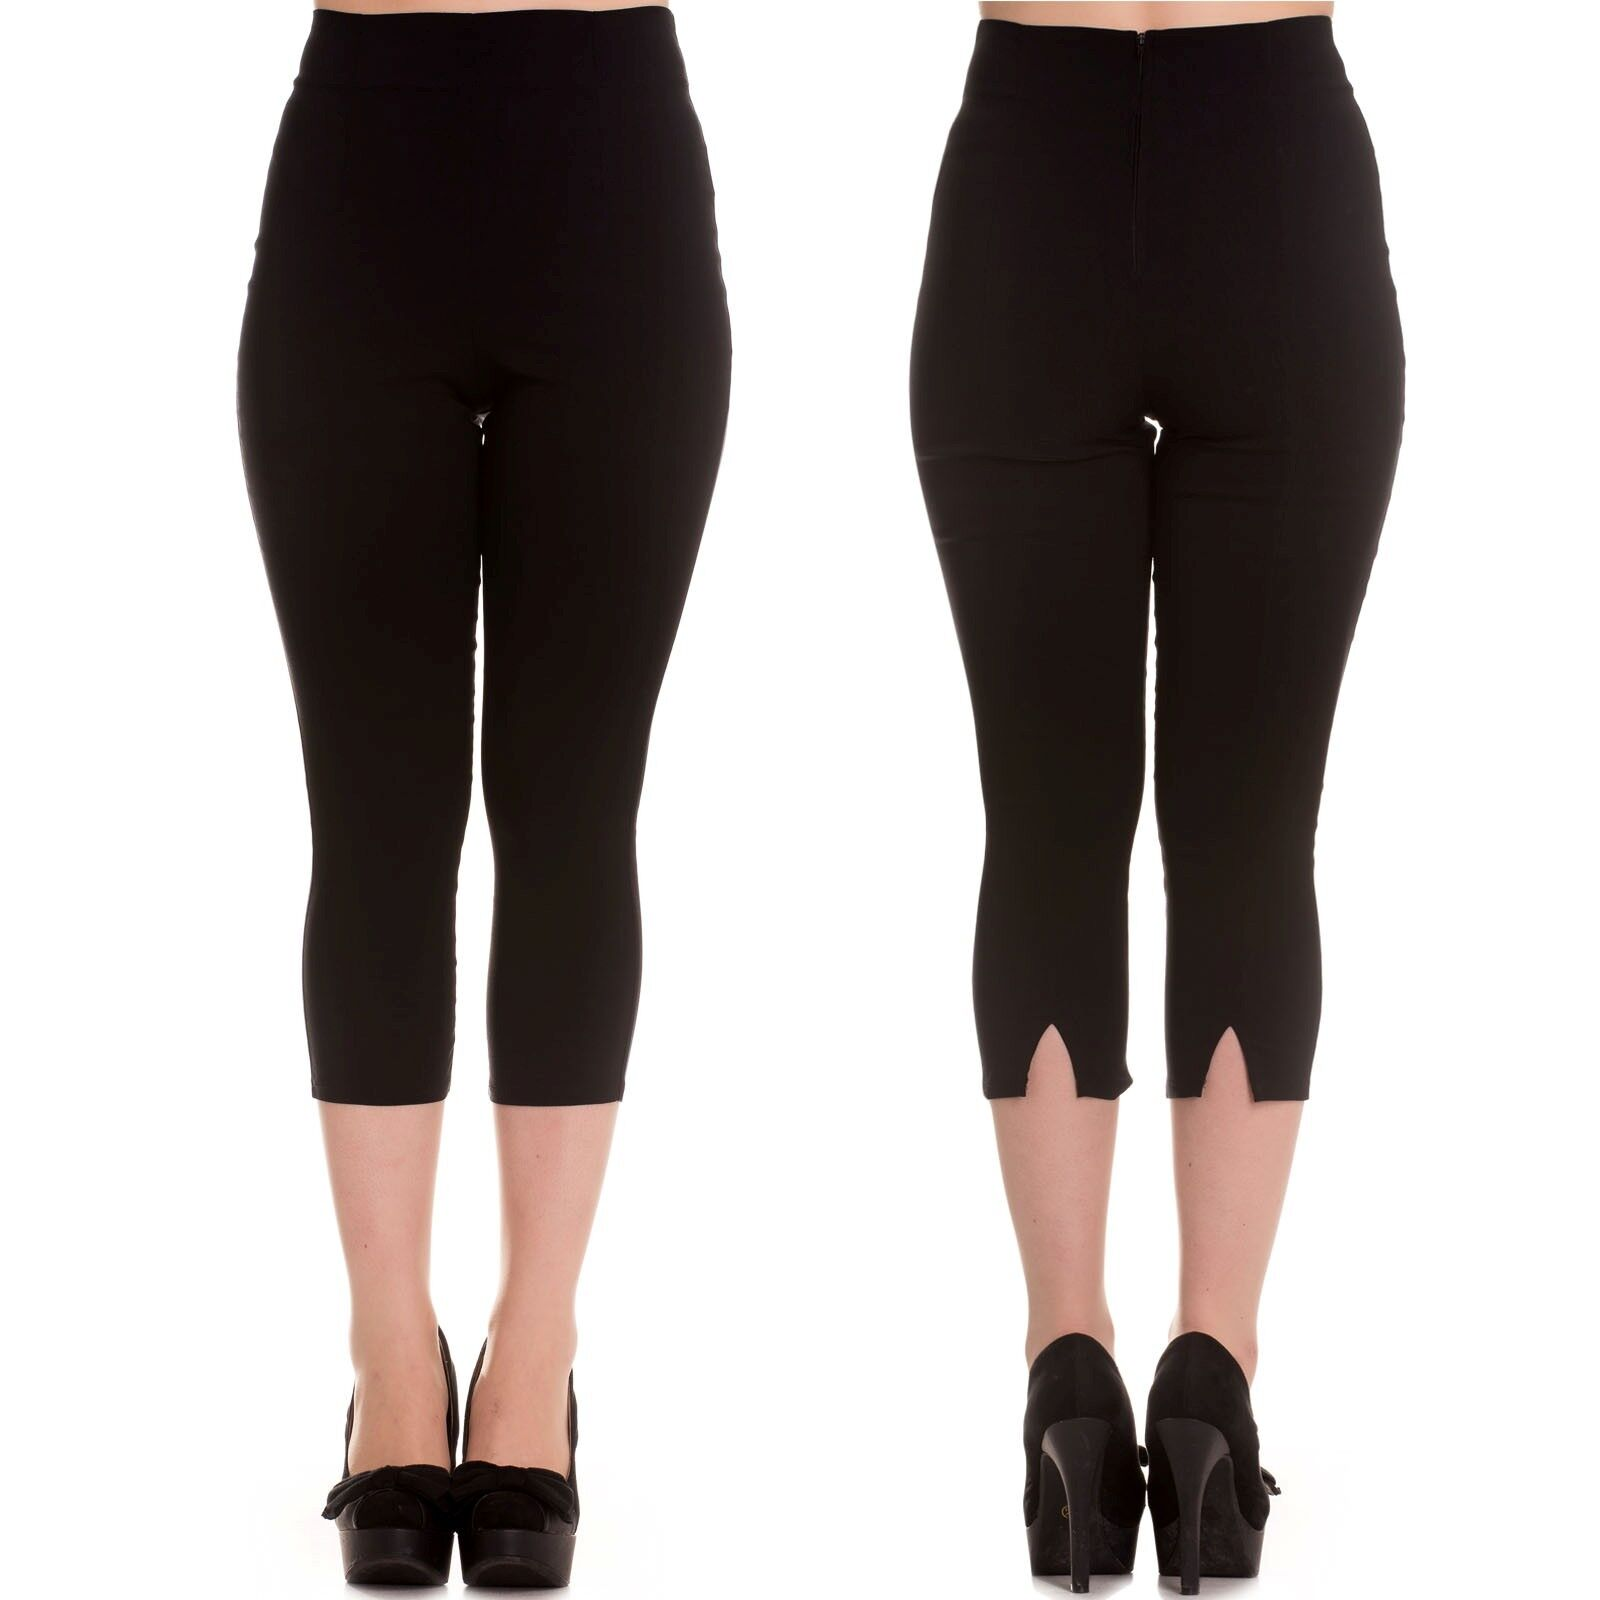 ab4bc0c77c5 Details about Hell Bunny Tina Capris Black Pedal Pushers Rockabilly Retro  Regular   Plus Size